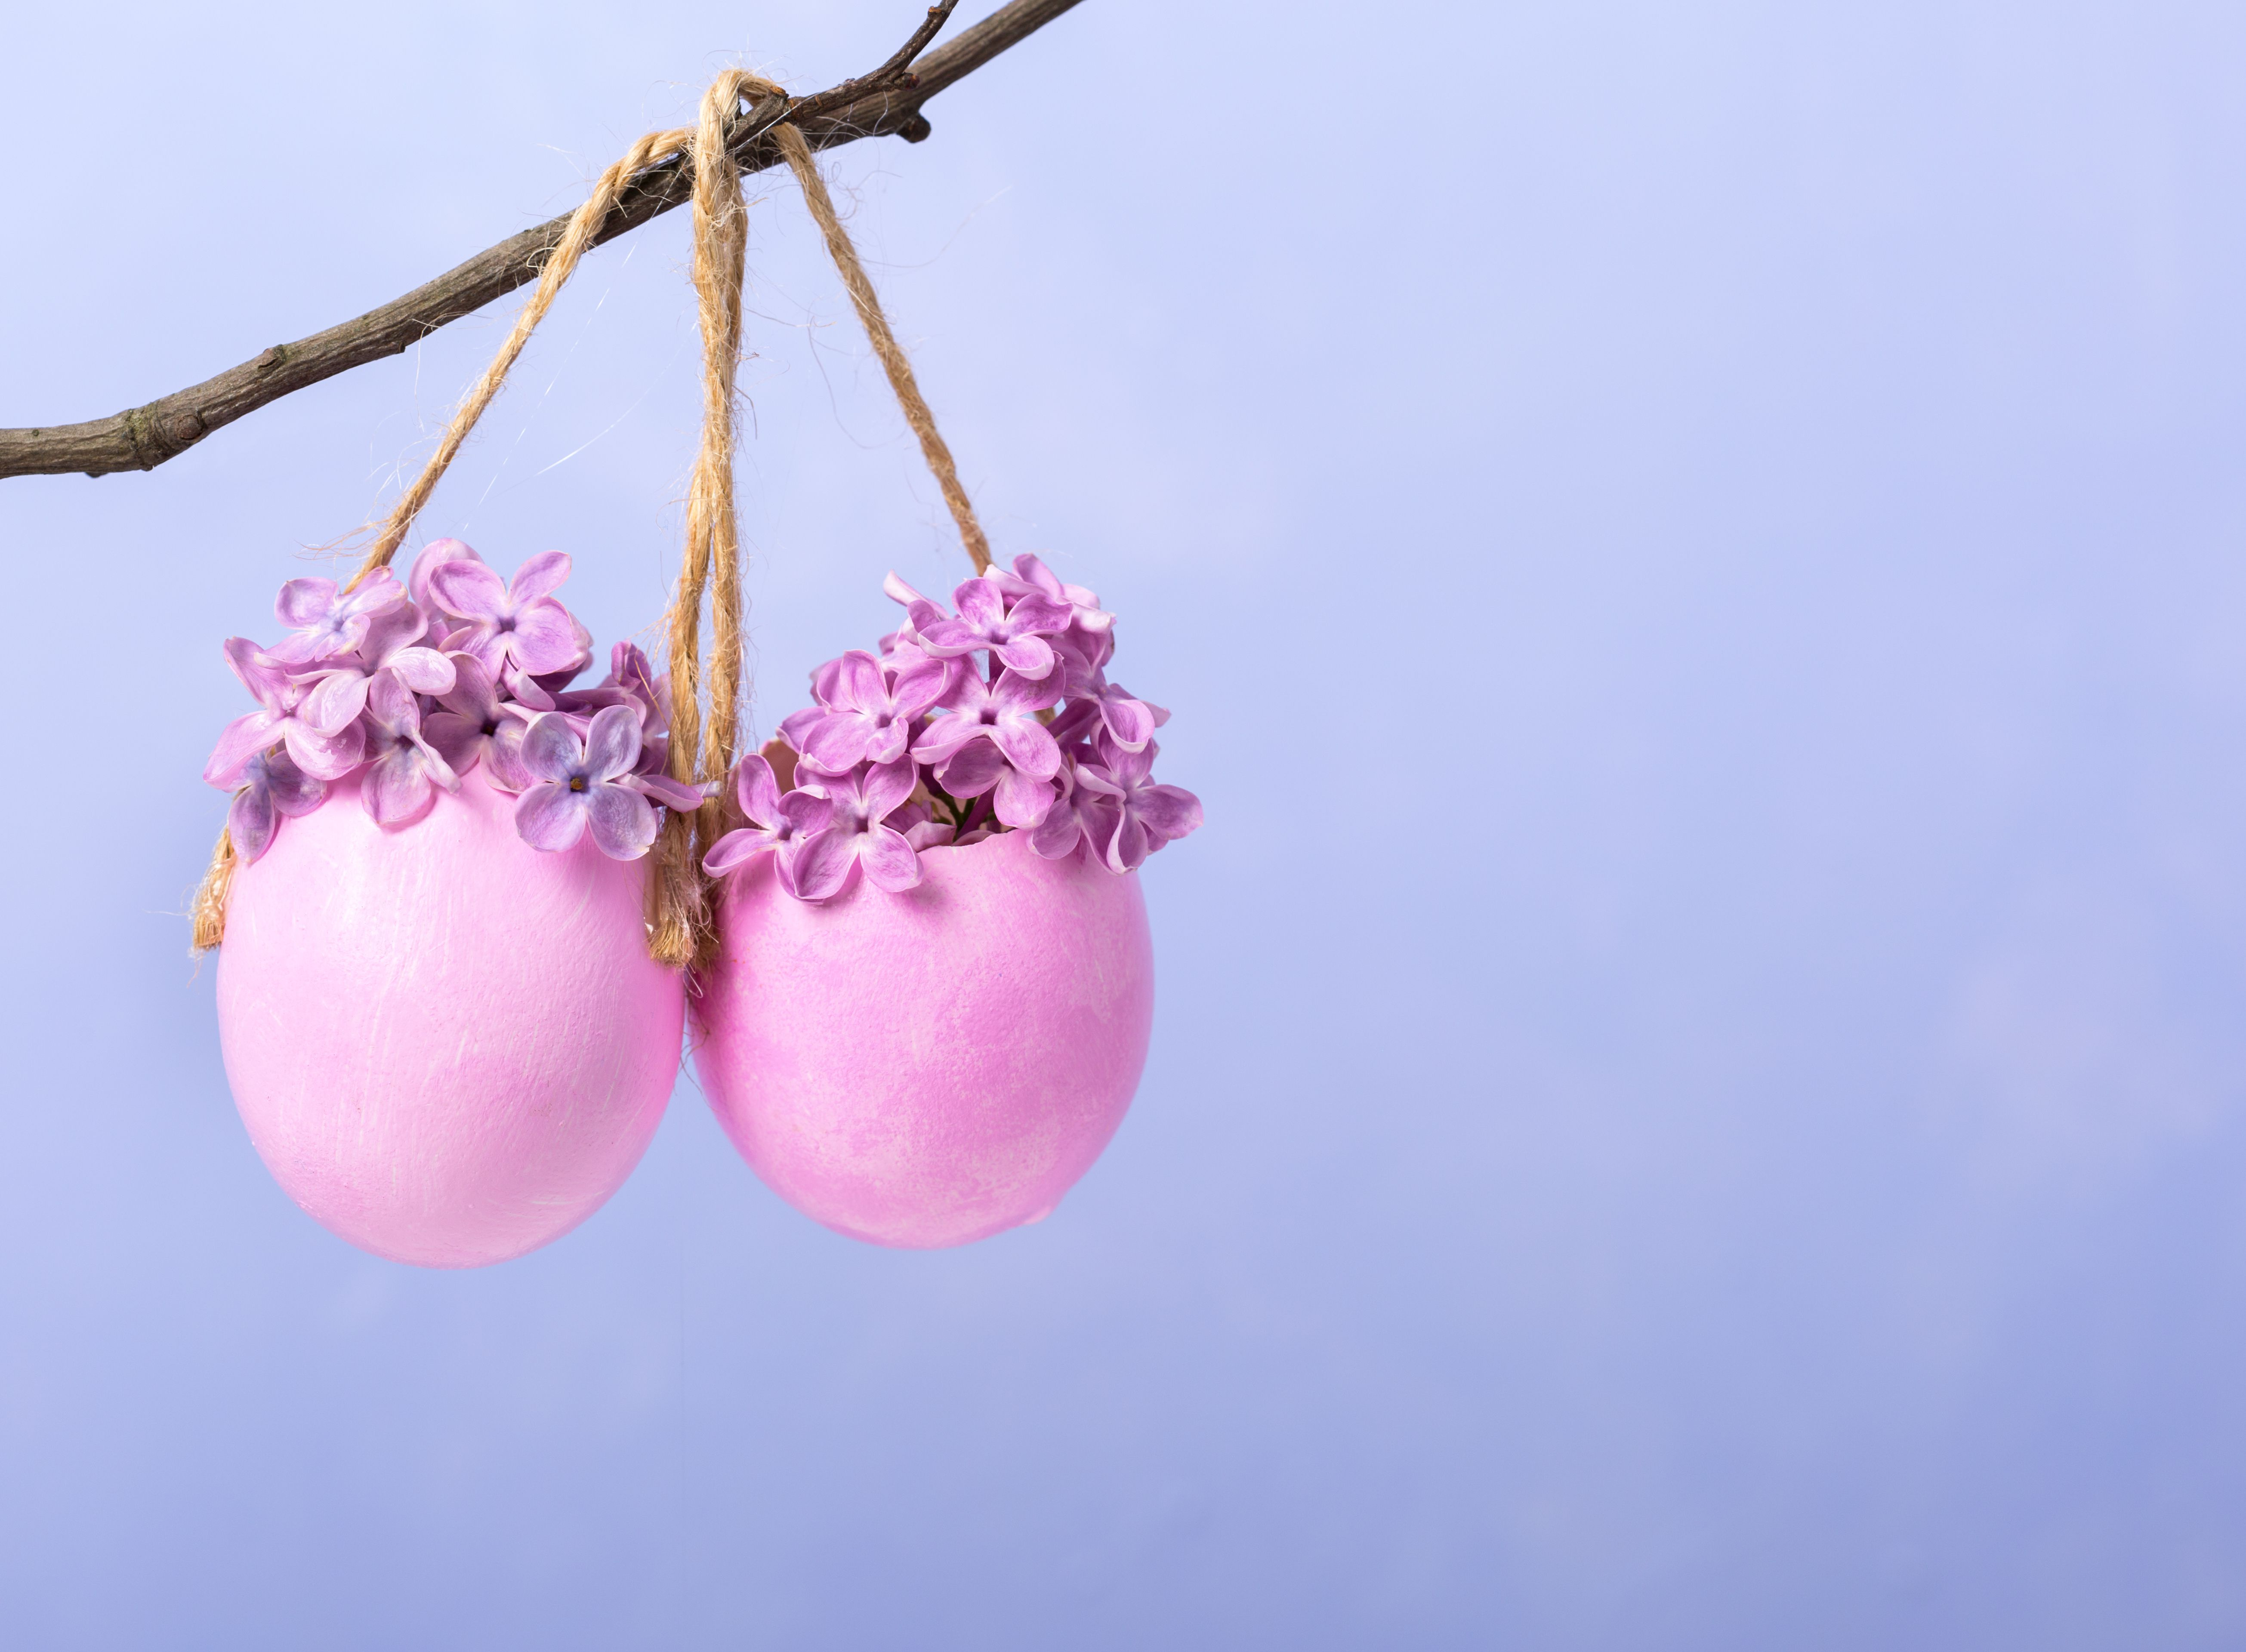 Lilac flowers (Syringa) in eggs shell. Easter decor